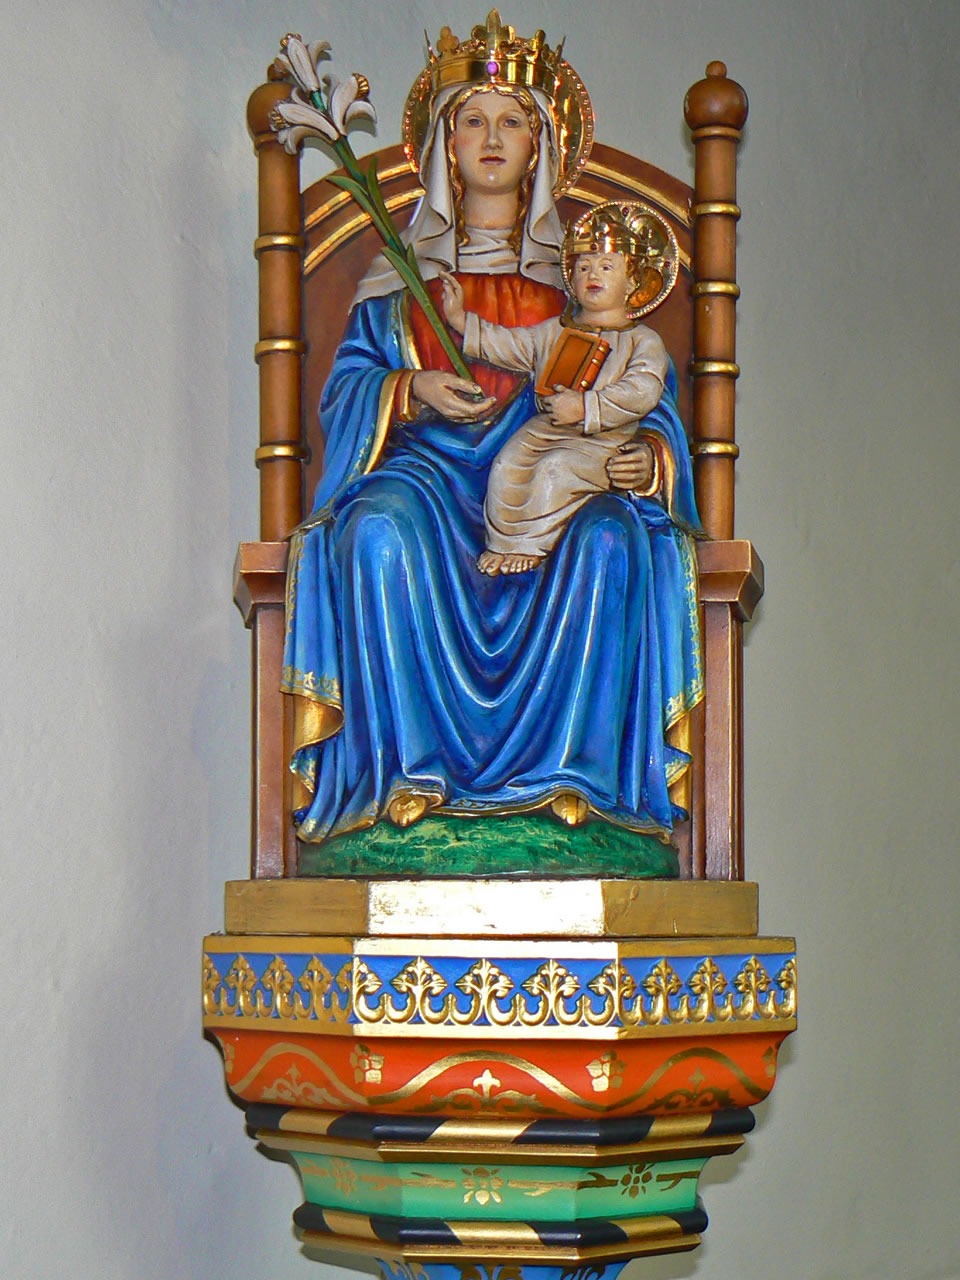 Lady Of The Wayside >> Walsingham including Little Walsingham, Shrine of our Lady, Walsingham Priory, Walsingham Light ...